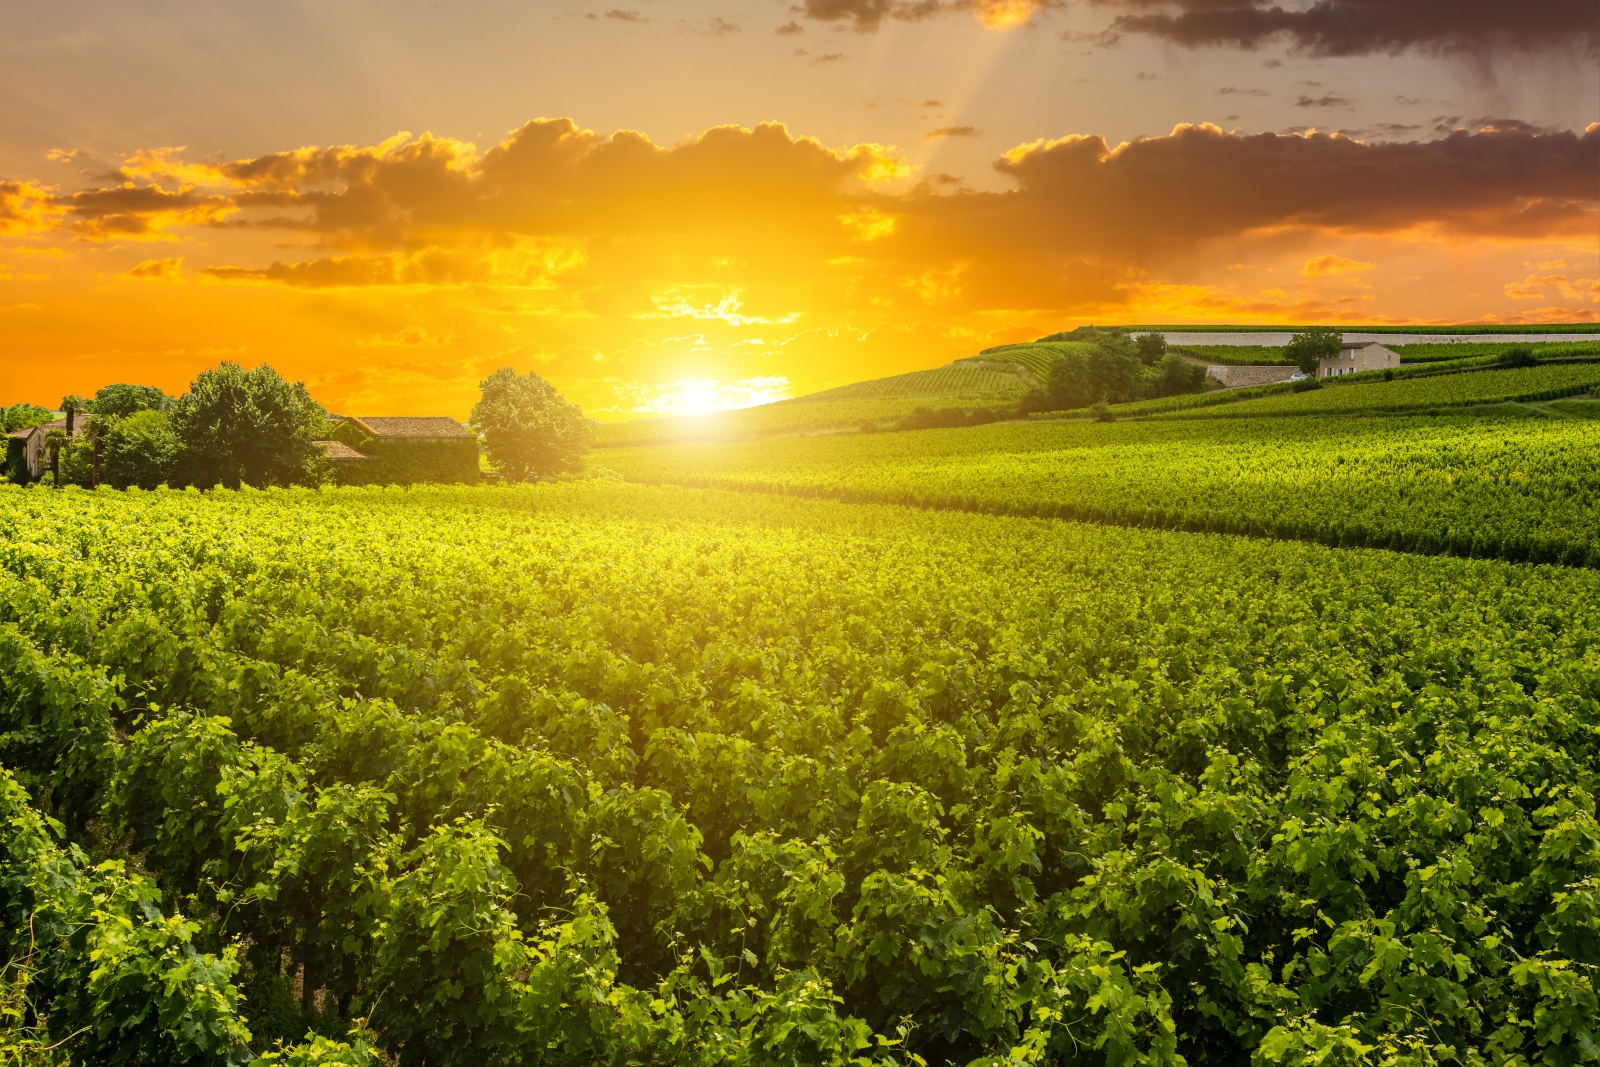 Where Does Trebbiano Come From